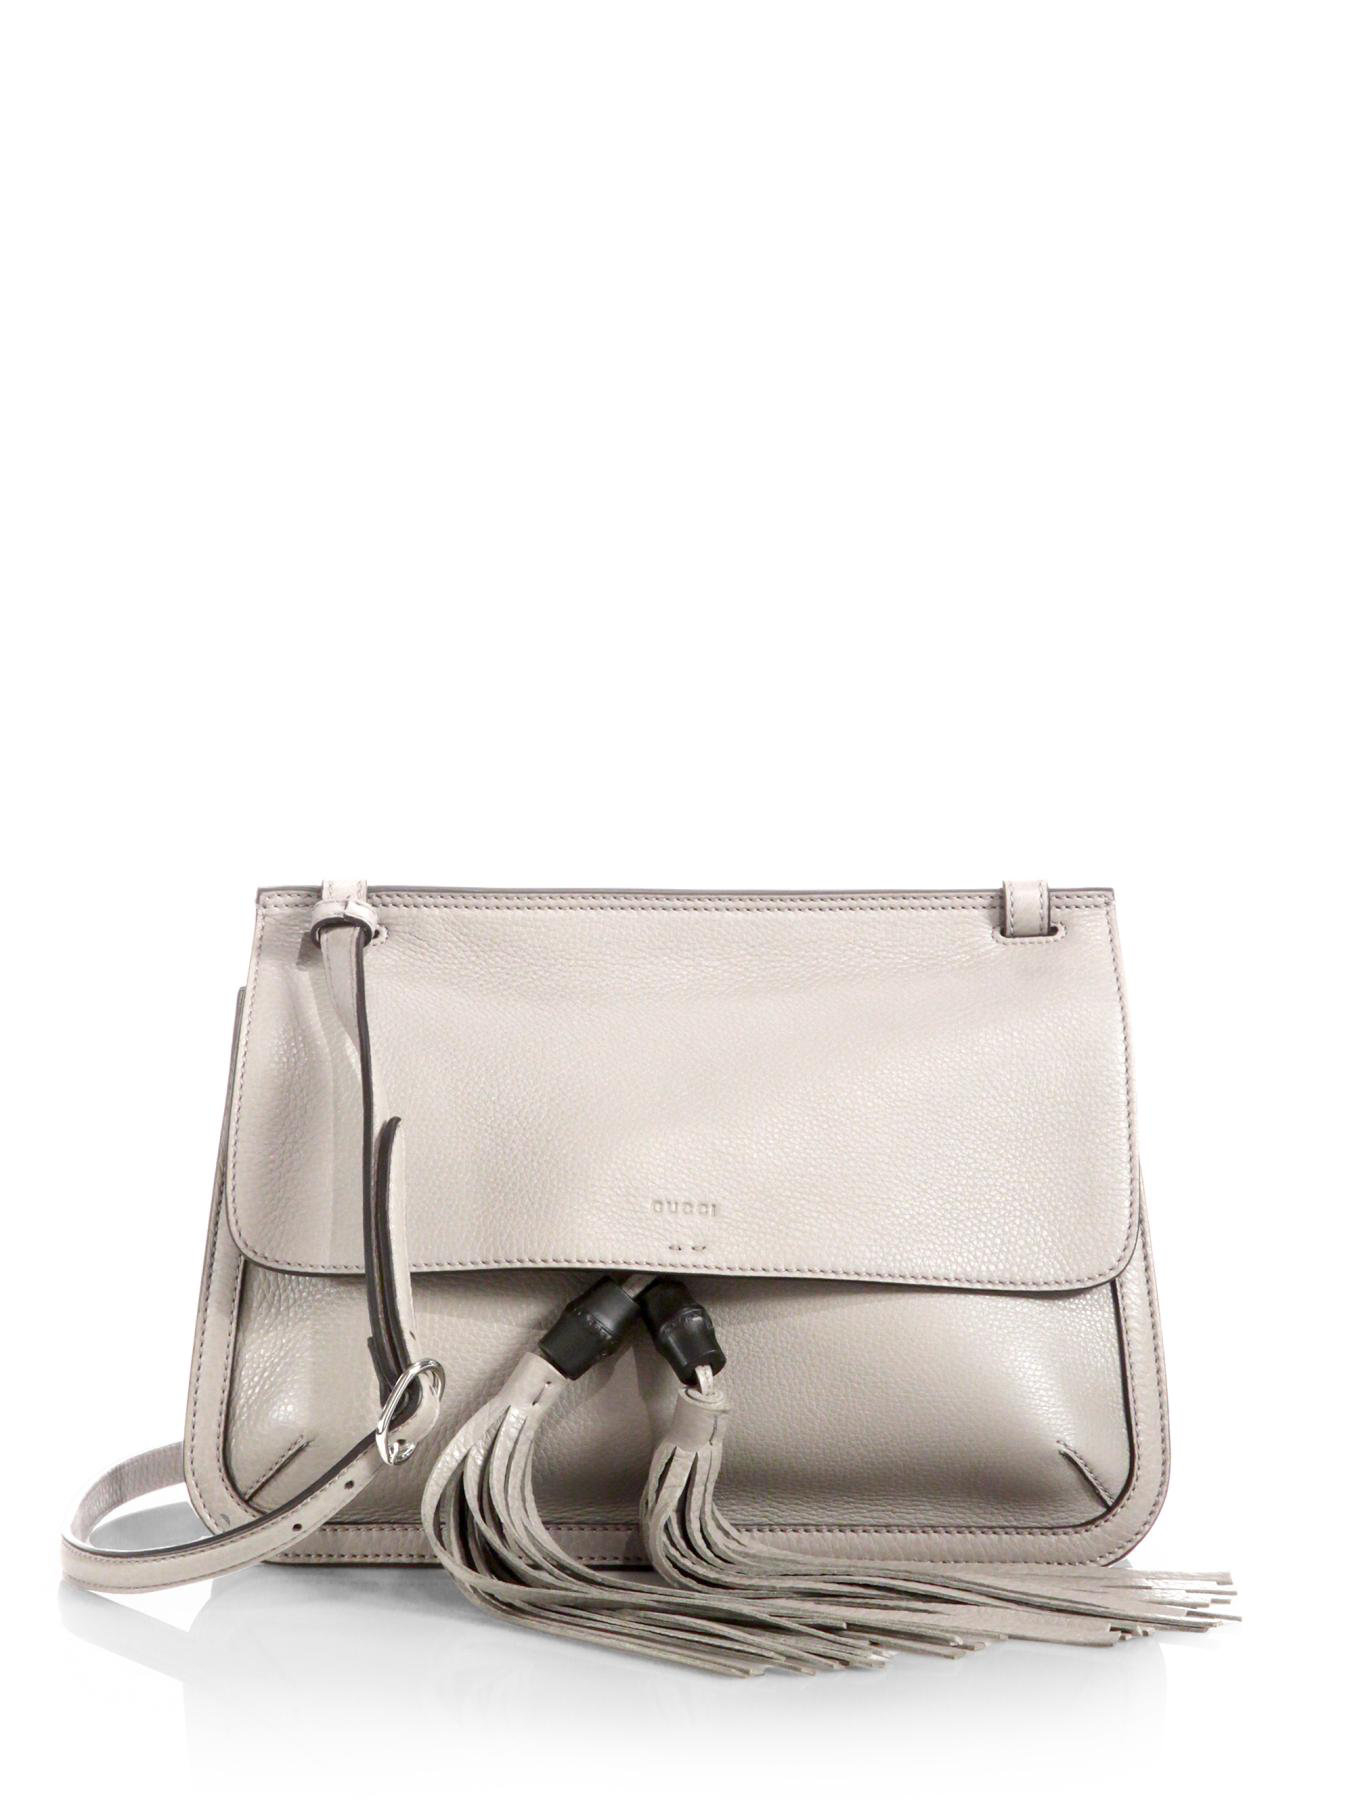 eabcb367652 Lyst - Gucci Bamboo Daily Leather Flap Shoulder Bag in Gray